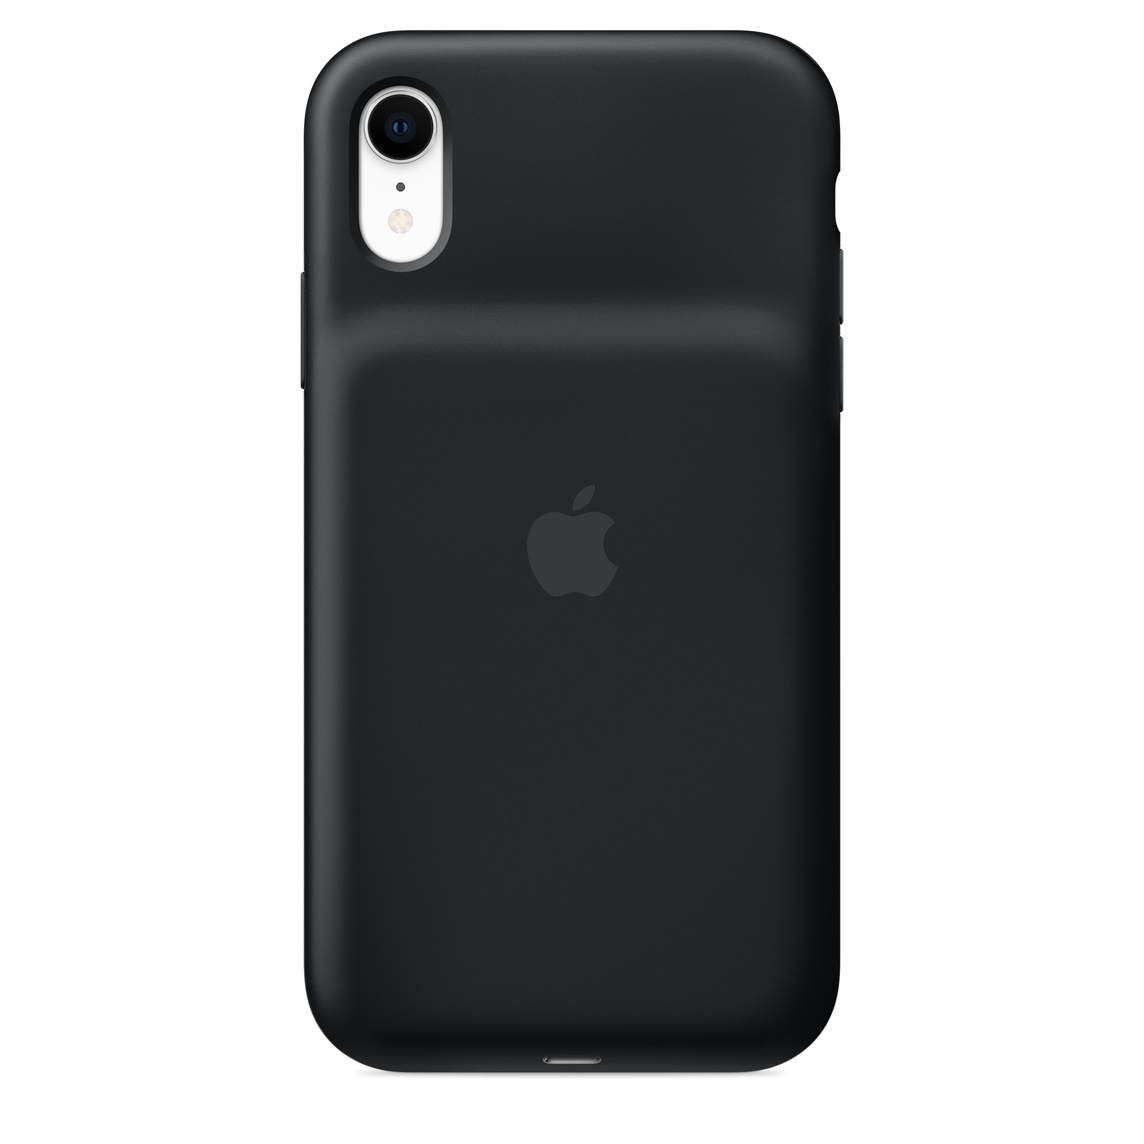 the best attitude a1ebe 7c2c3 iPhone XR Smart Battery Case - Black